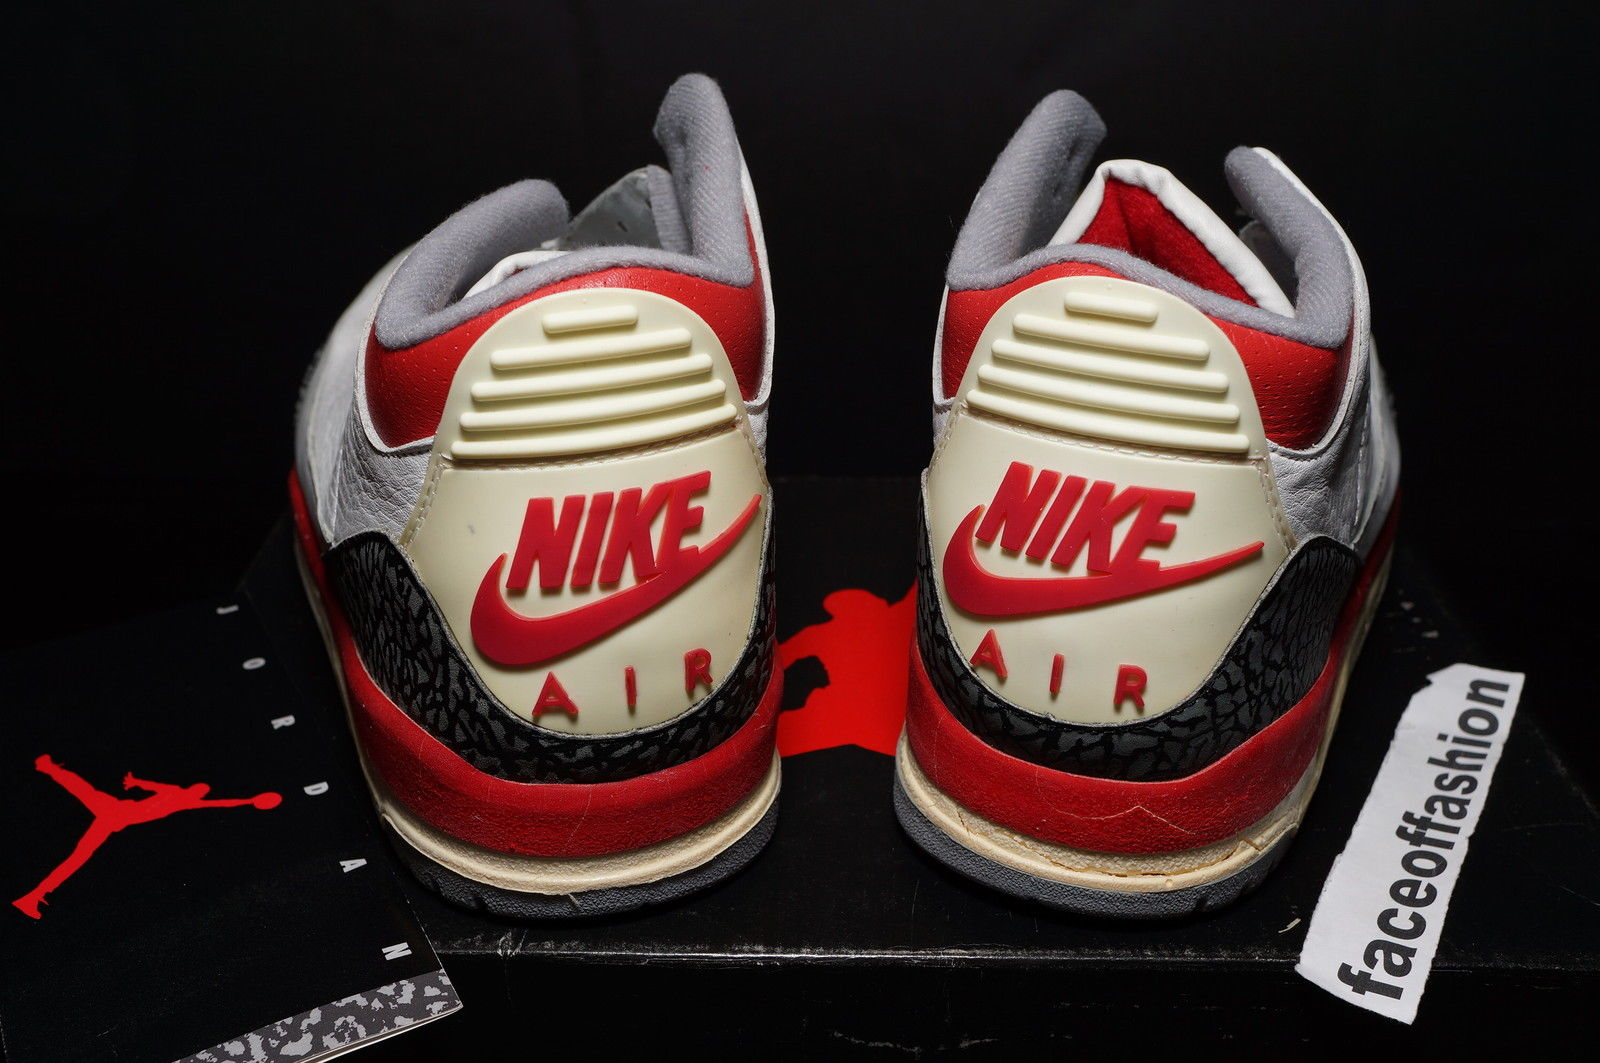 85ad39765f8 The 23 Most Rare and Expensive Air Jordans on eBay Right Now